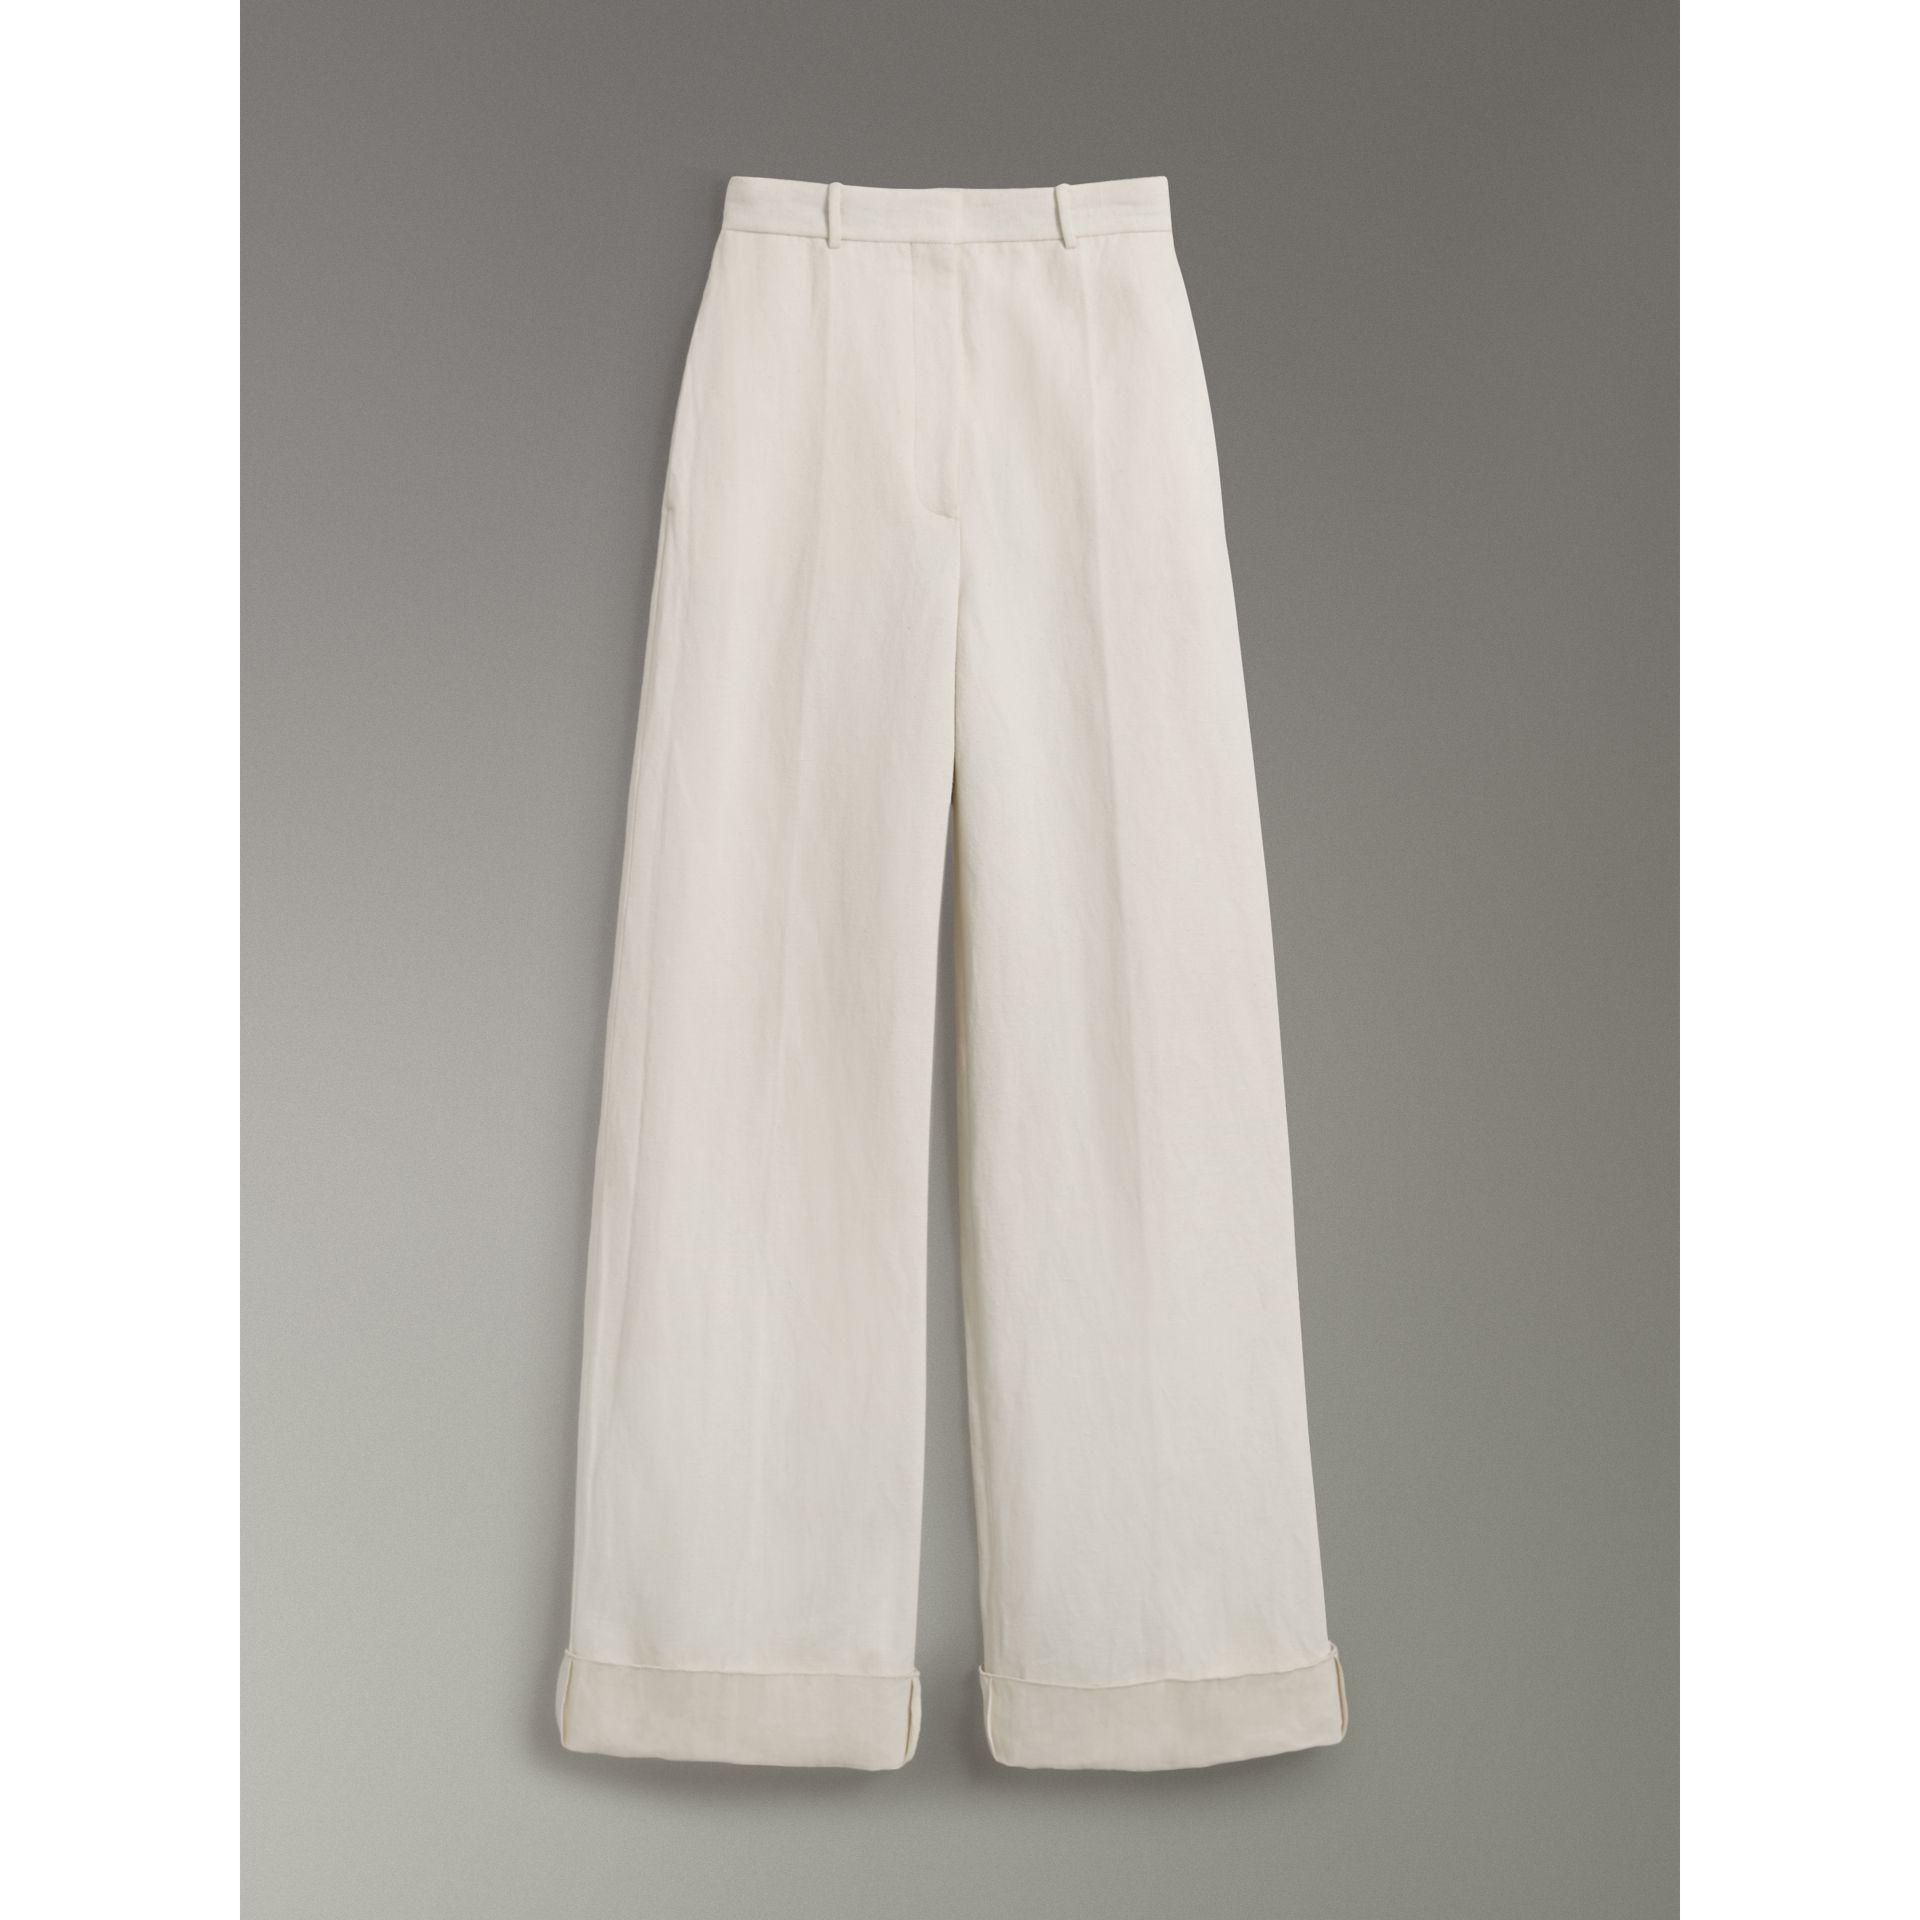 Cotton Linen Canvas Wide-leg Trousers in Off White - Women | Burberry Australia - gallery image 3